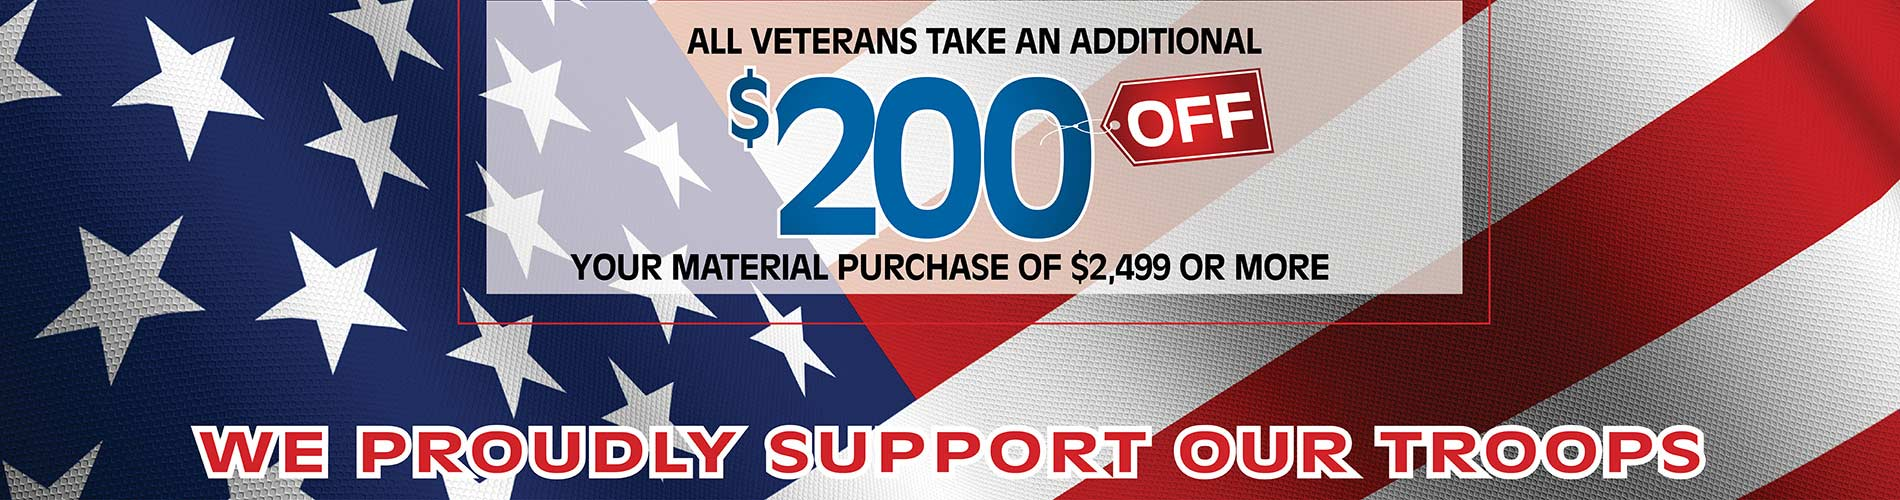 All veterans take an additional $200 off your material purchase of $2,499 or more. We proudly support our troops